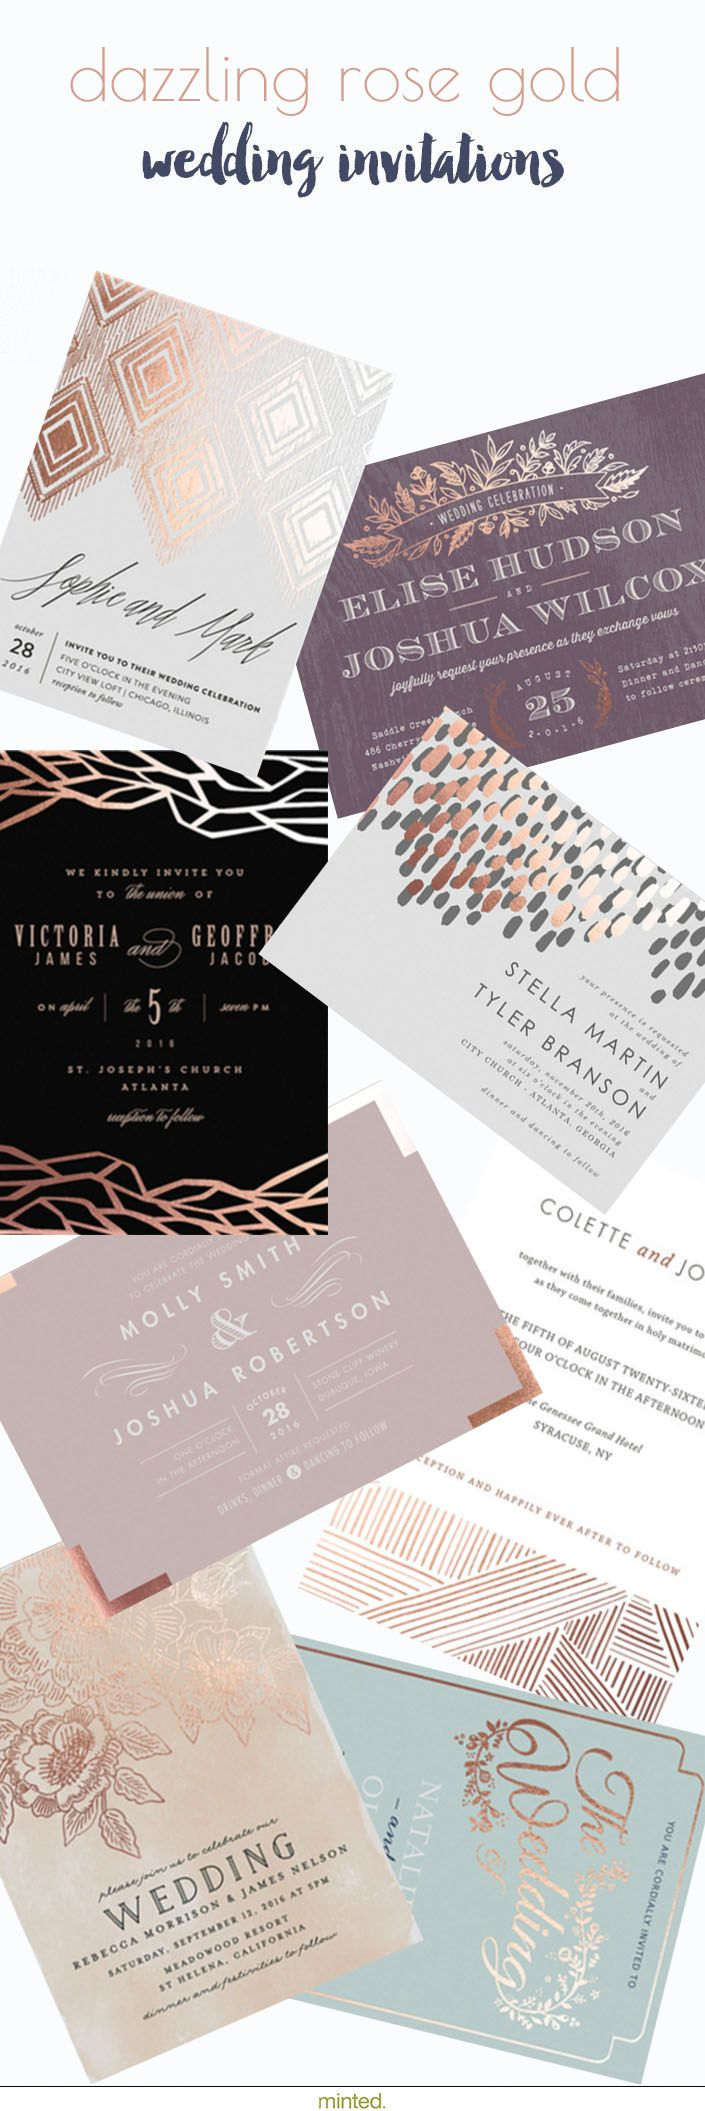 Best 200+ Wedding: Invitations/Save The Date images on Pinterest ...